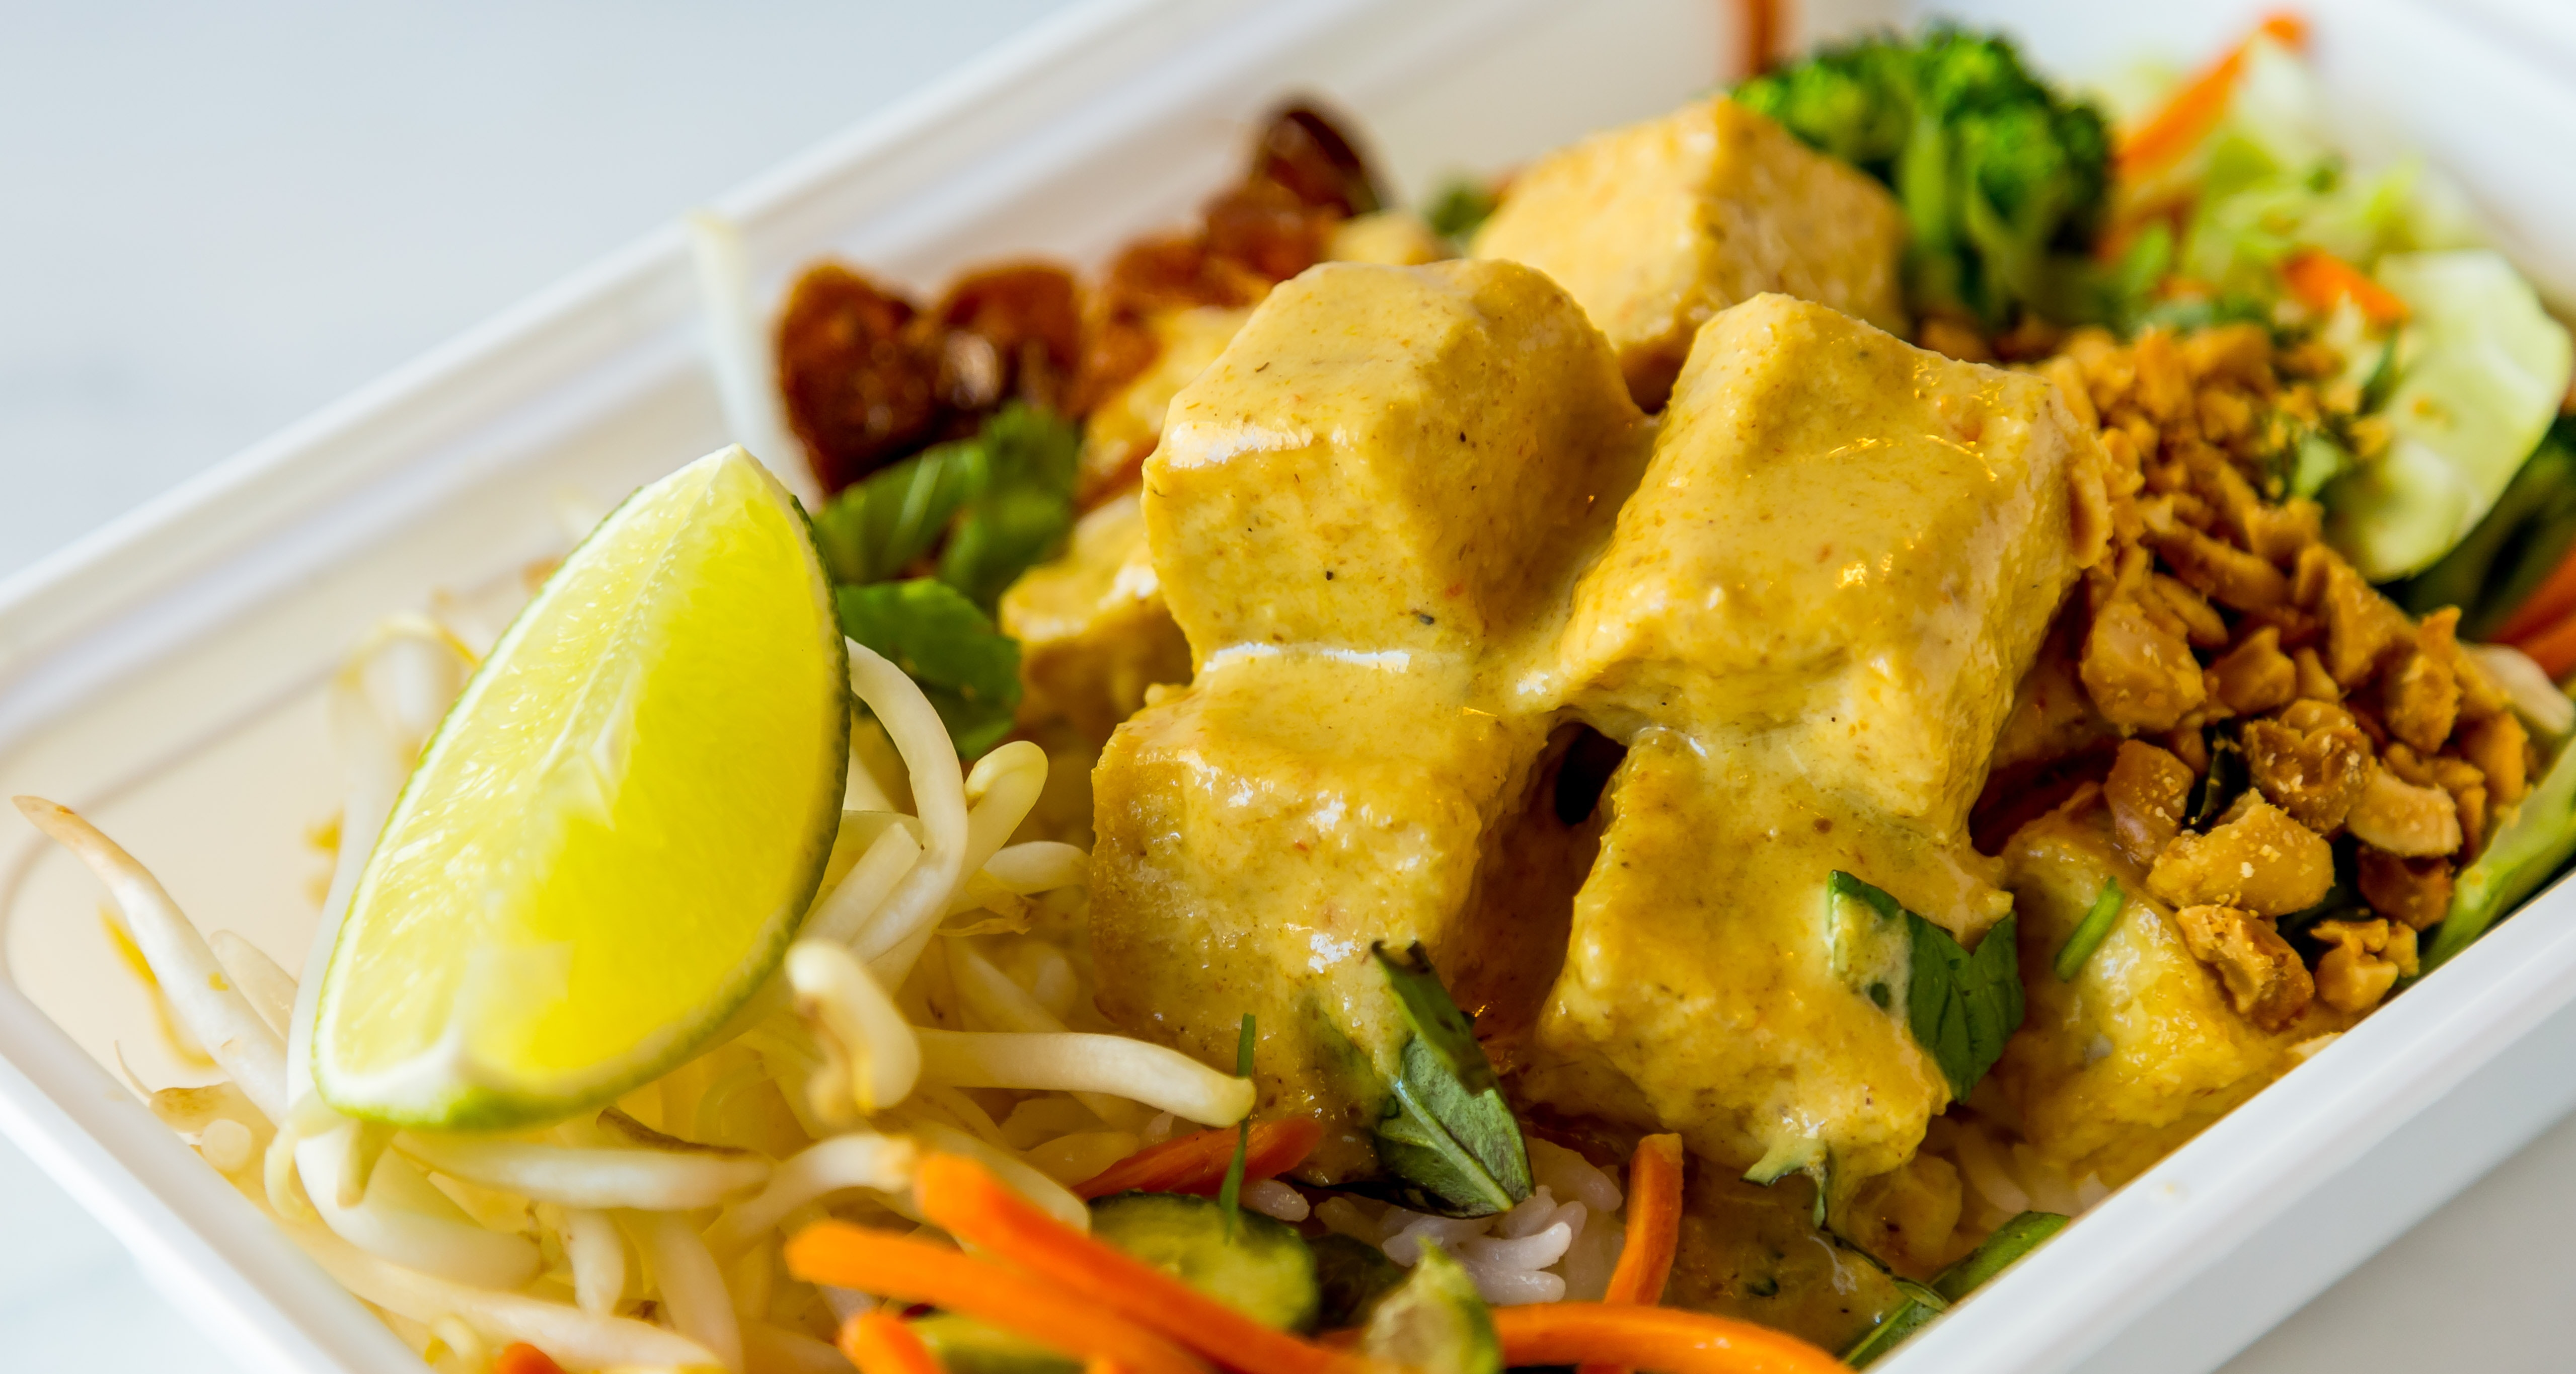 Chilled Entrée Box: TOFU - Coconut Curry